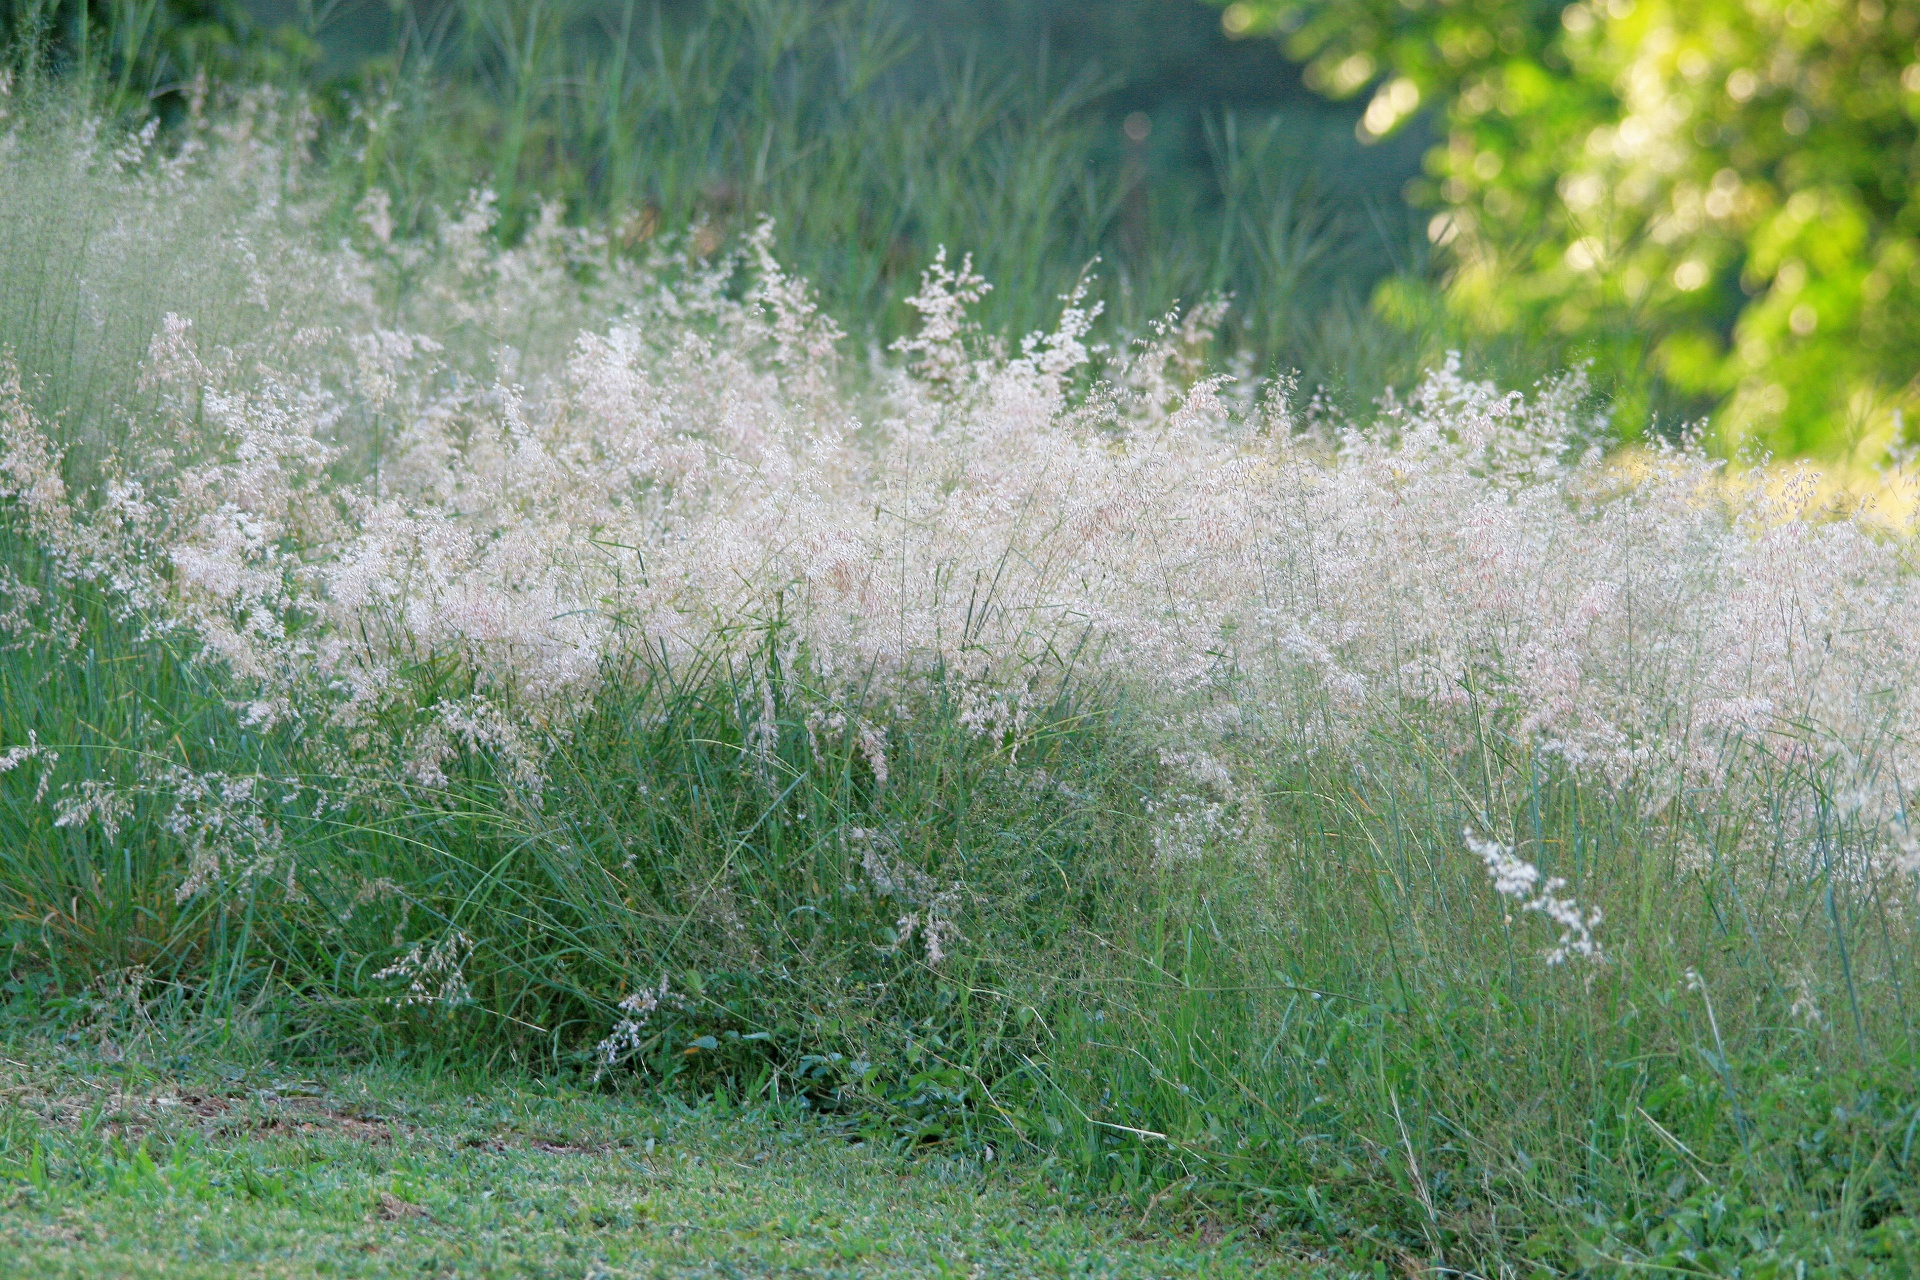 Tufts Of Wild Grass Free Stock Photo - Public Domain Pictures